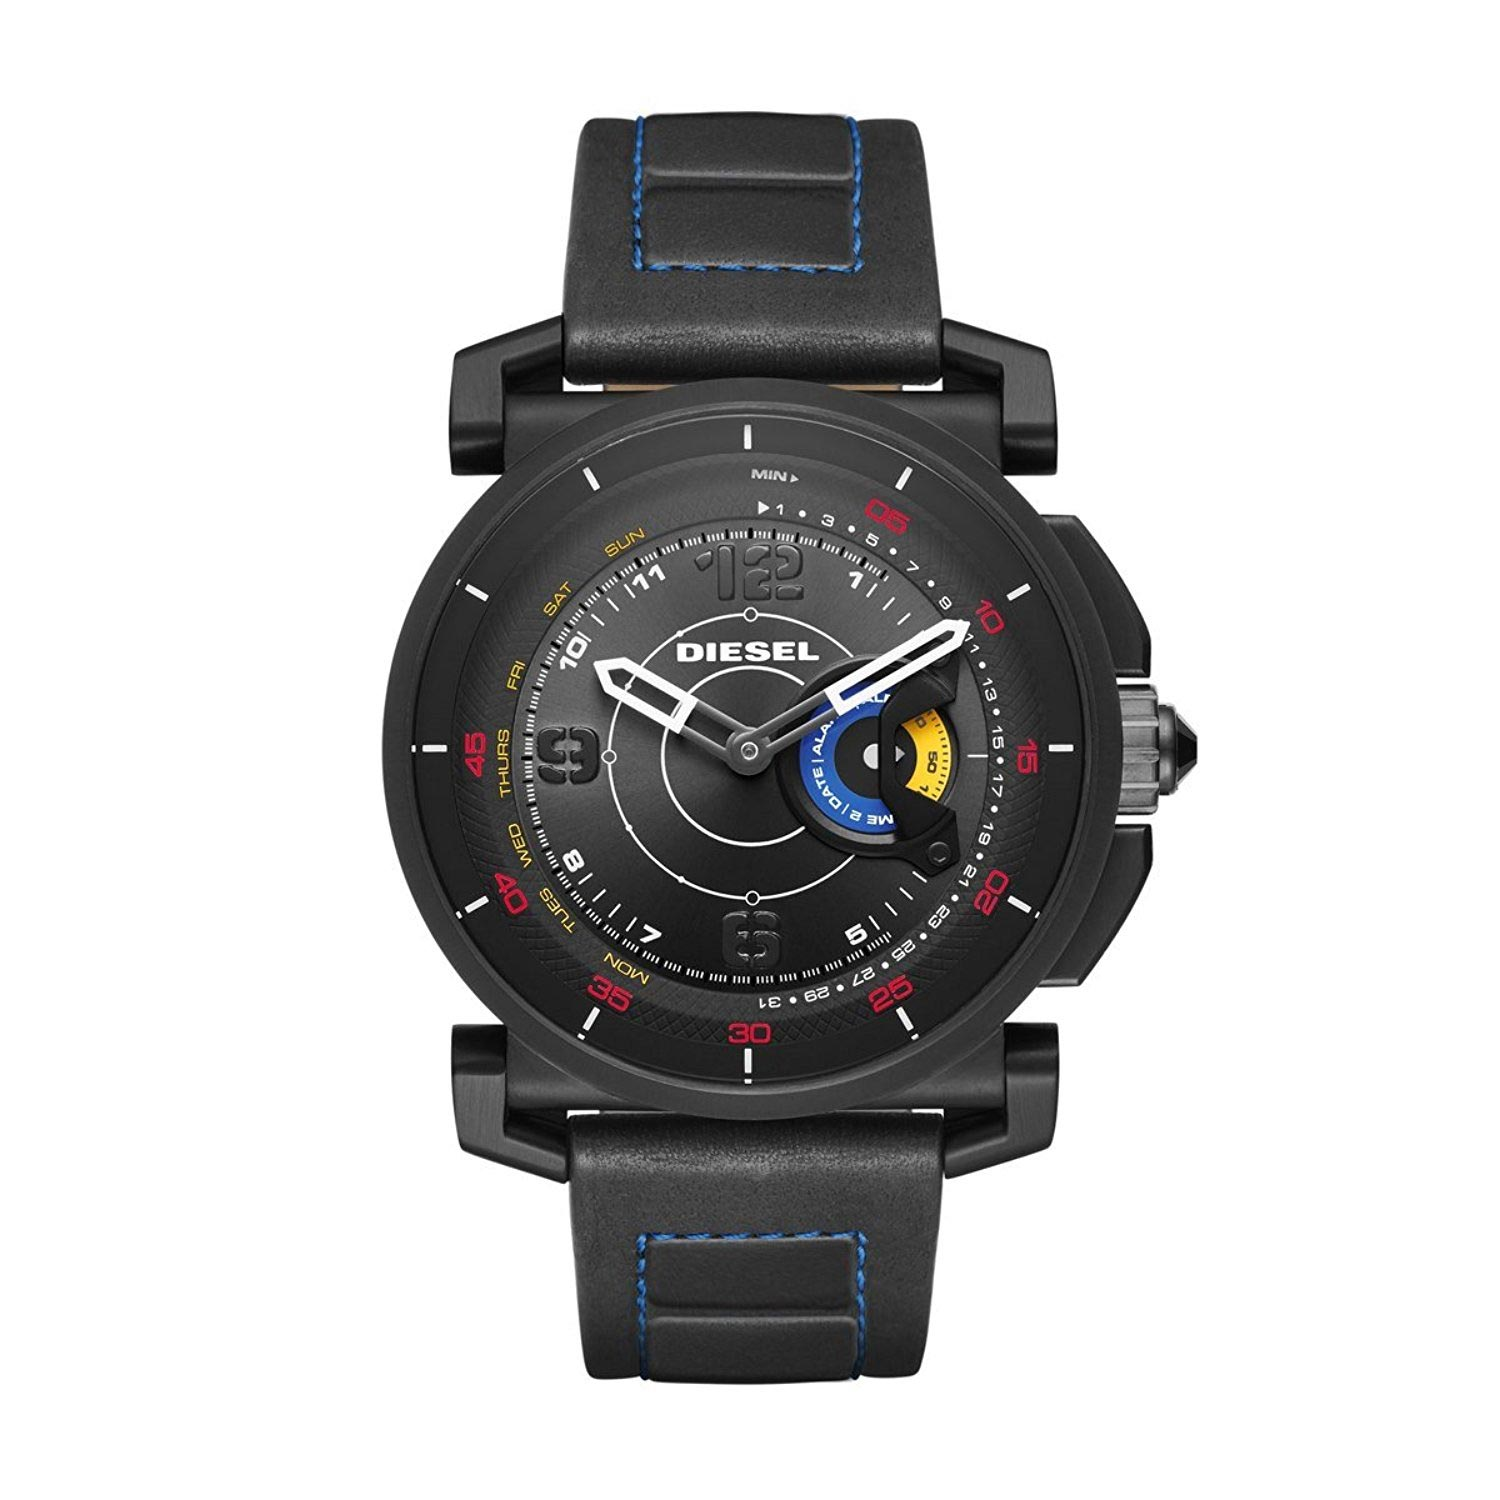 diesel dzt1000 hybrid smartwatch wasserdichte hybriduhr mit lederarmband herrenuhren. Black Bedroom Furniture Sets. Home Design Ideas